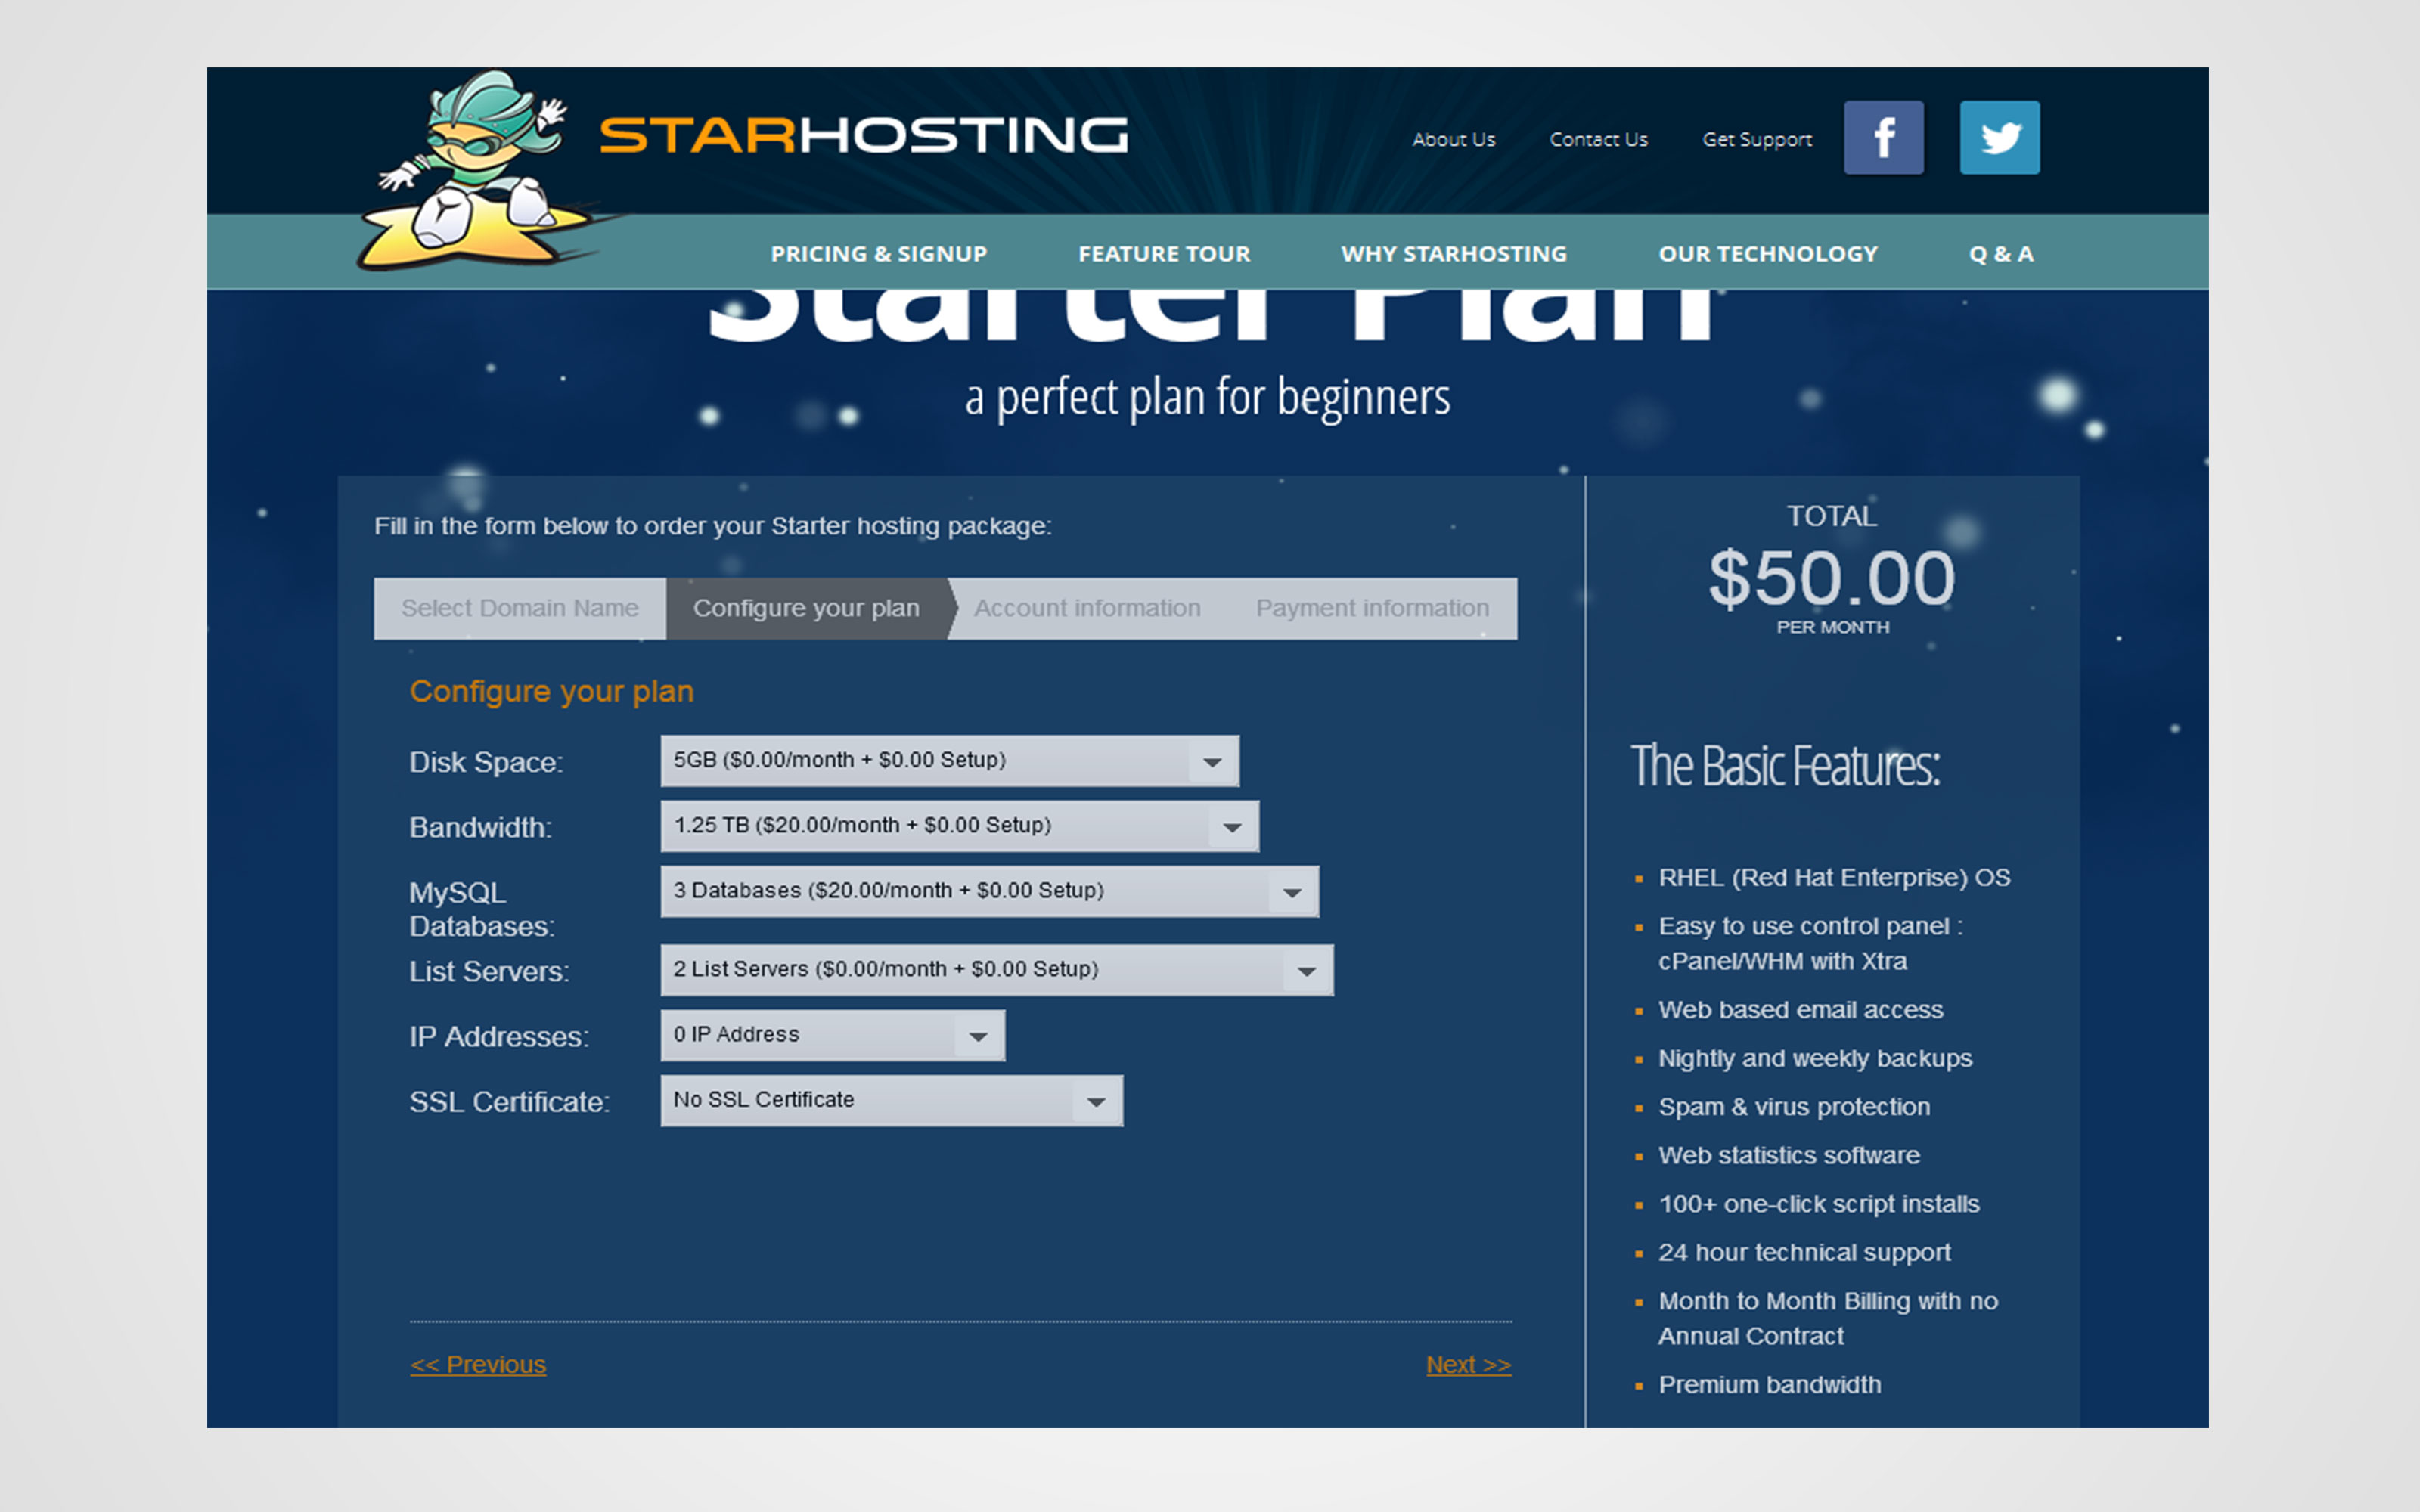 Custom Ubersmith Order Form Development for Star Hosting